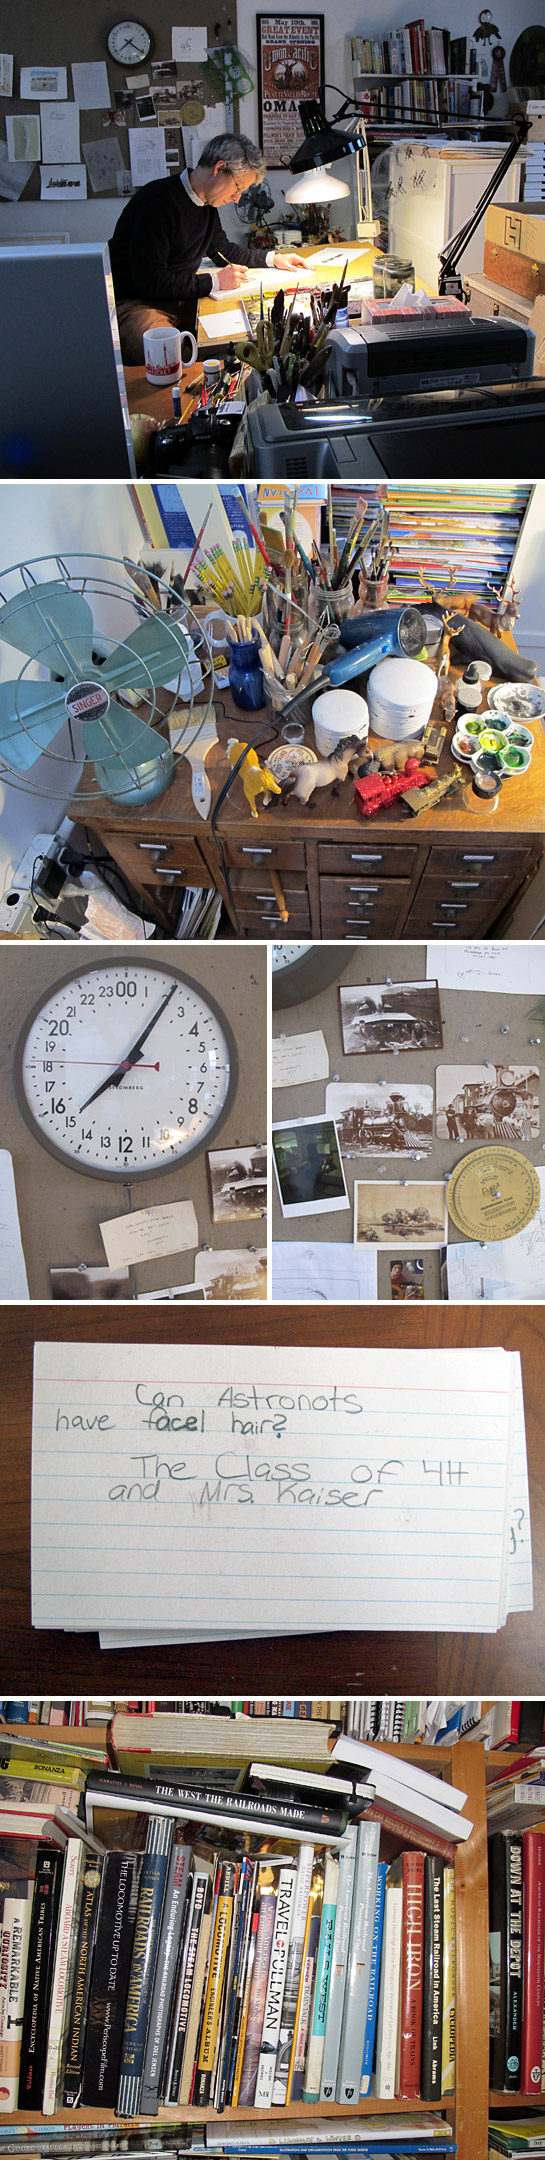 """Brian Floca's work space.From top: Brian working at his desk; some of Brian's materials and scale models. Brian uses the scale models to help him draw things from a distance; a twenty-four hour clock; old postcards serve as inspiration for his upcoming book, Locomotive; A favorite question from a child during a class visit for Brian's book, Moonshot. """"I told them I think everyone can have facial hair now. It's been sort of a facial hair revolution in space but initially I think you had to be clean shaven.""""; Research books for Locomotive."""